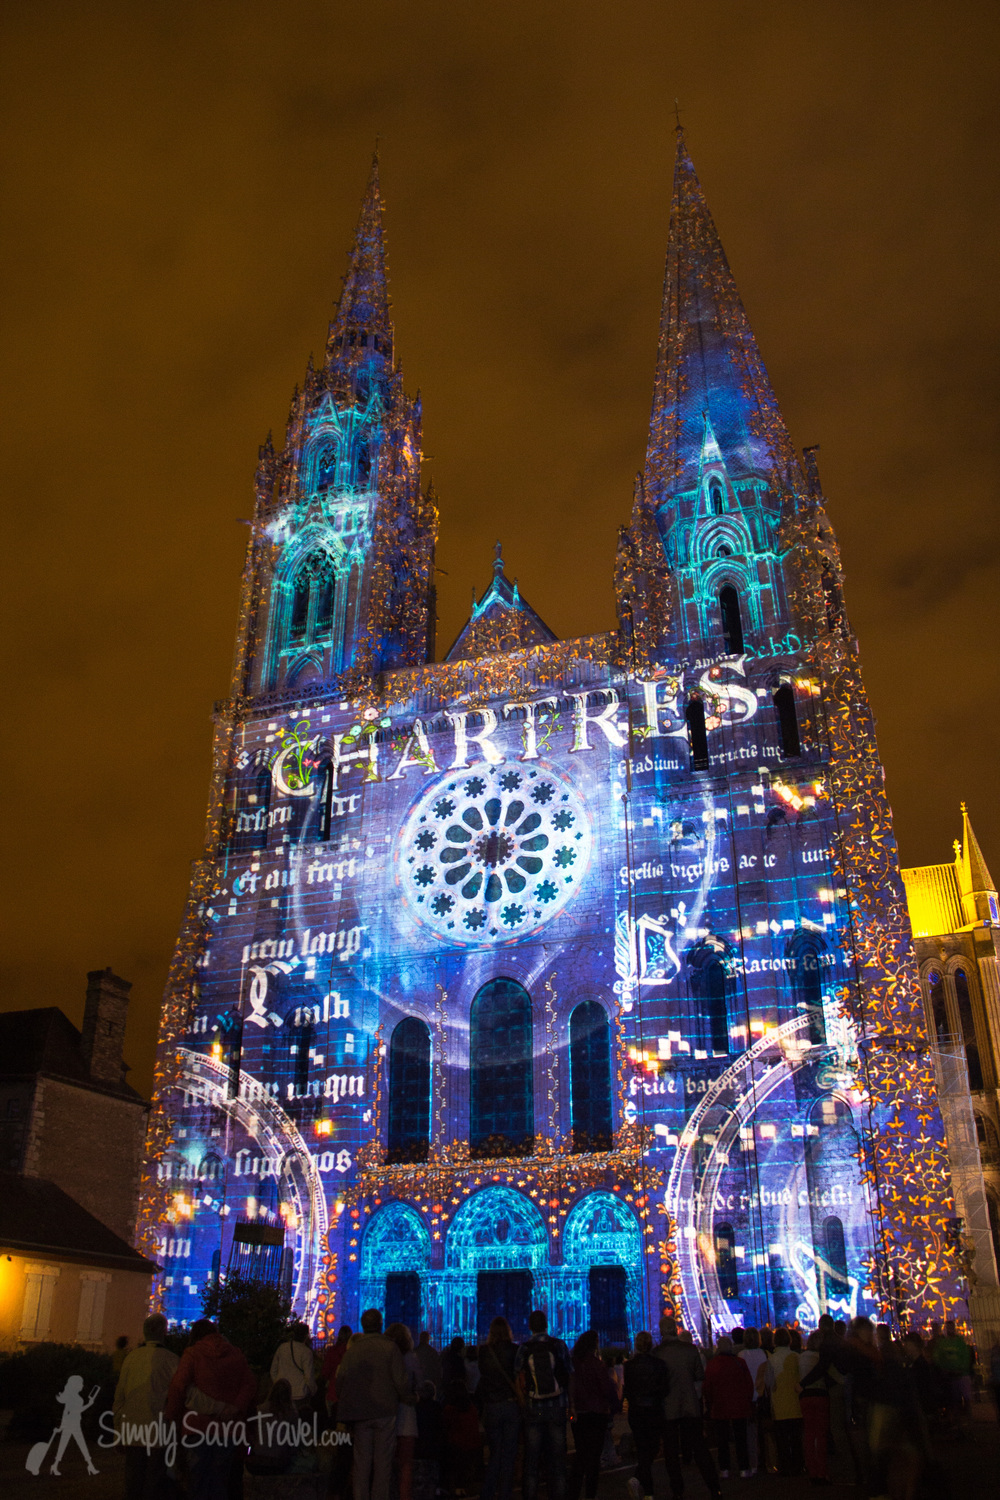 Chartres Cathedral at night, Chartres en lumières 2014